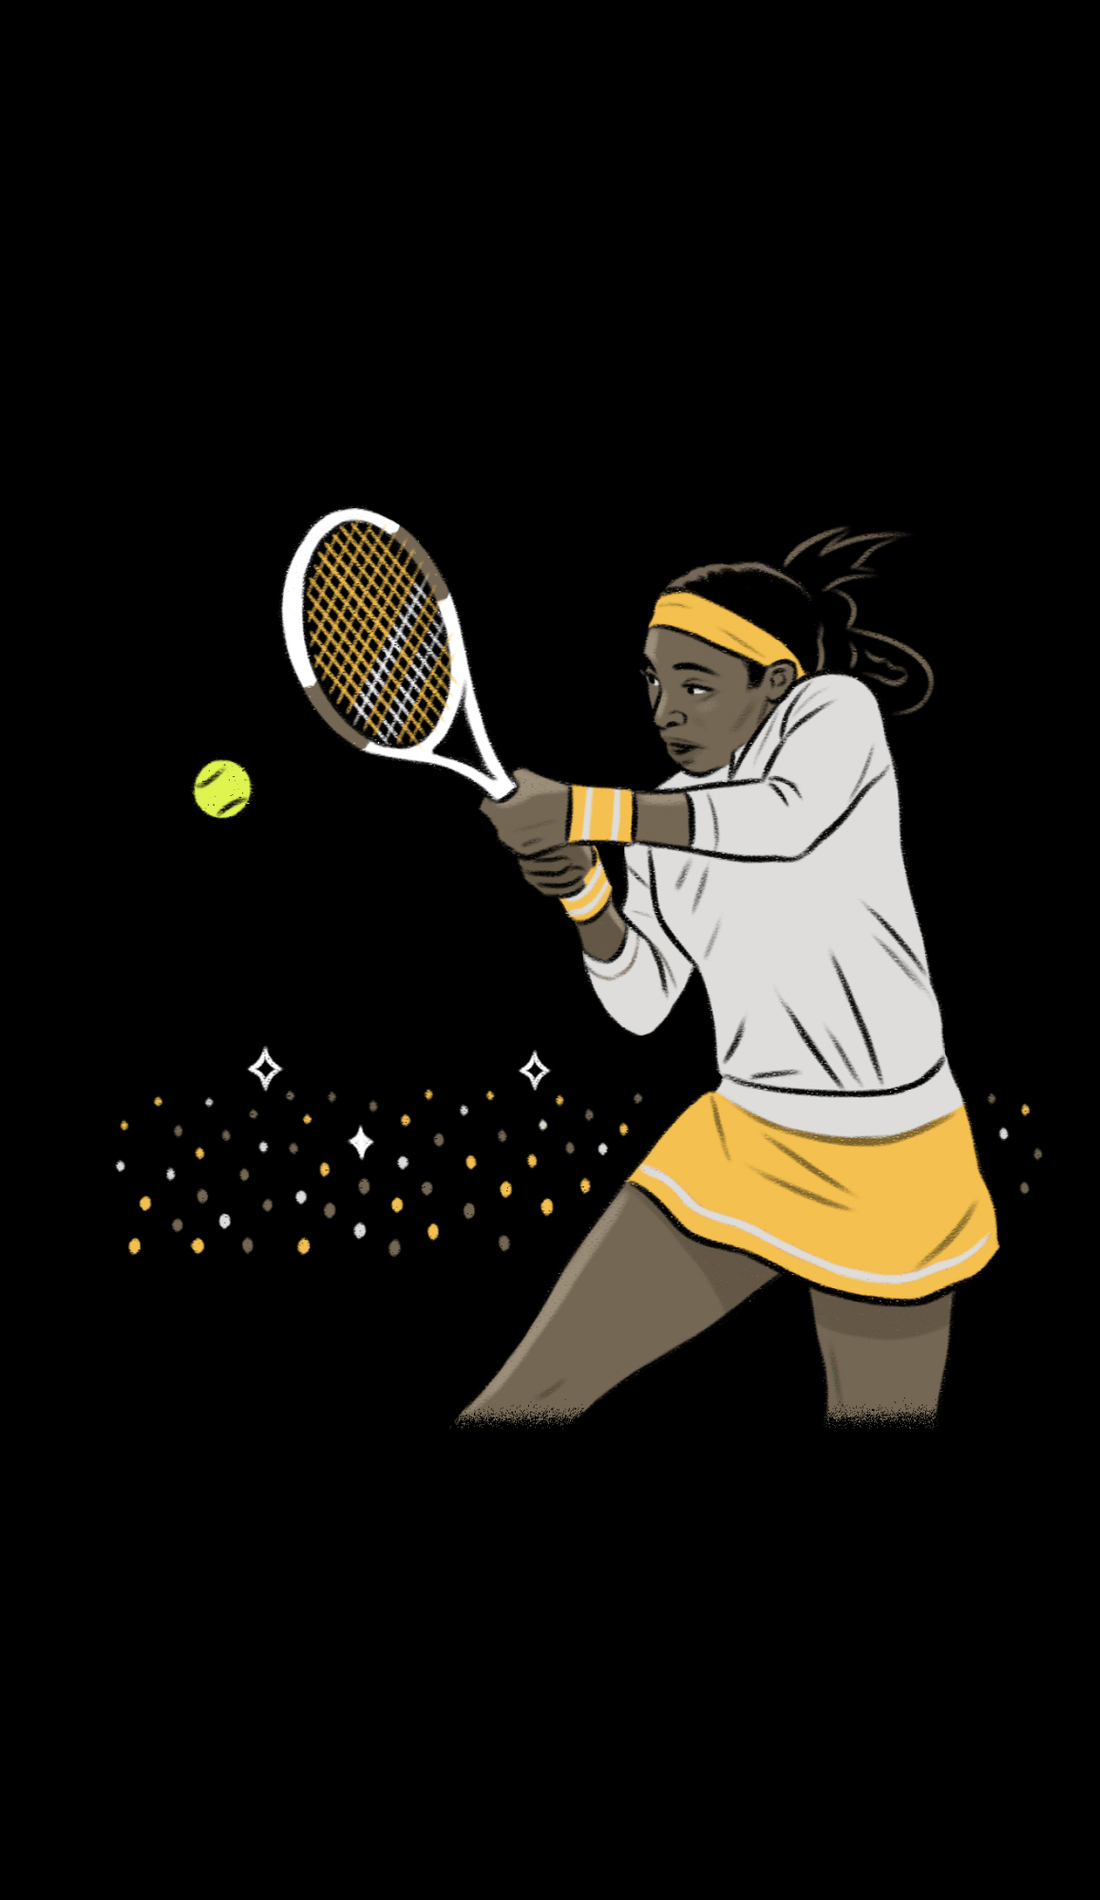 A French Open live event